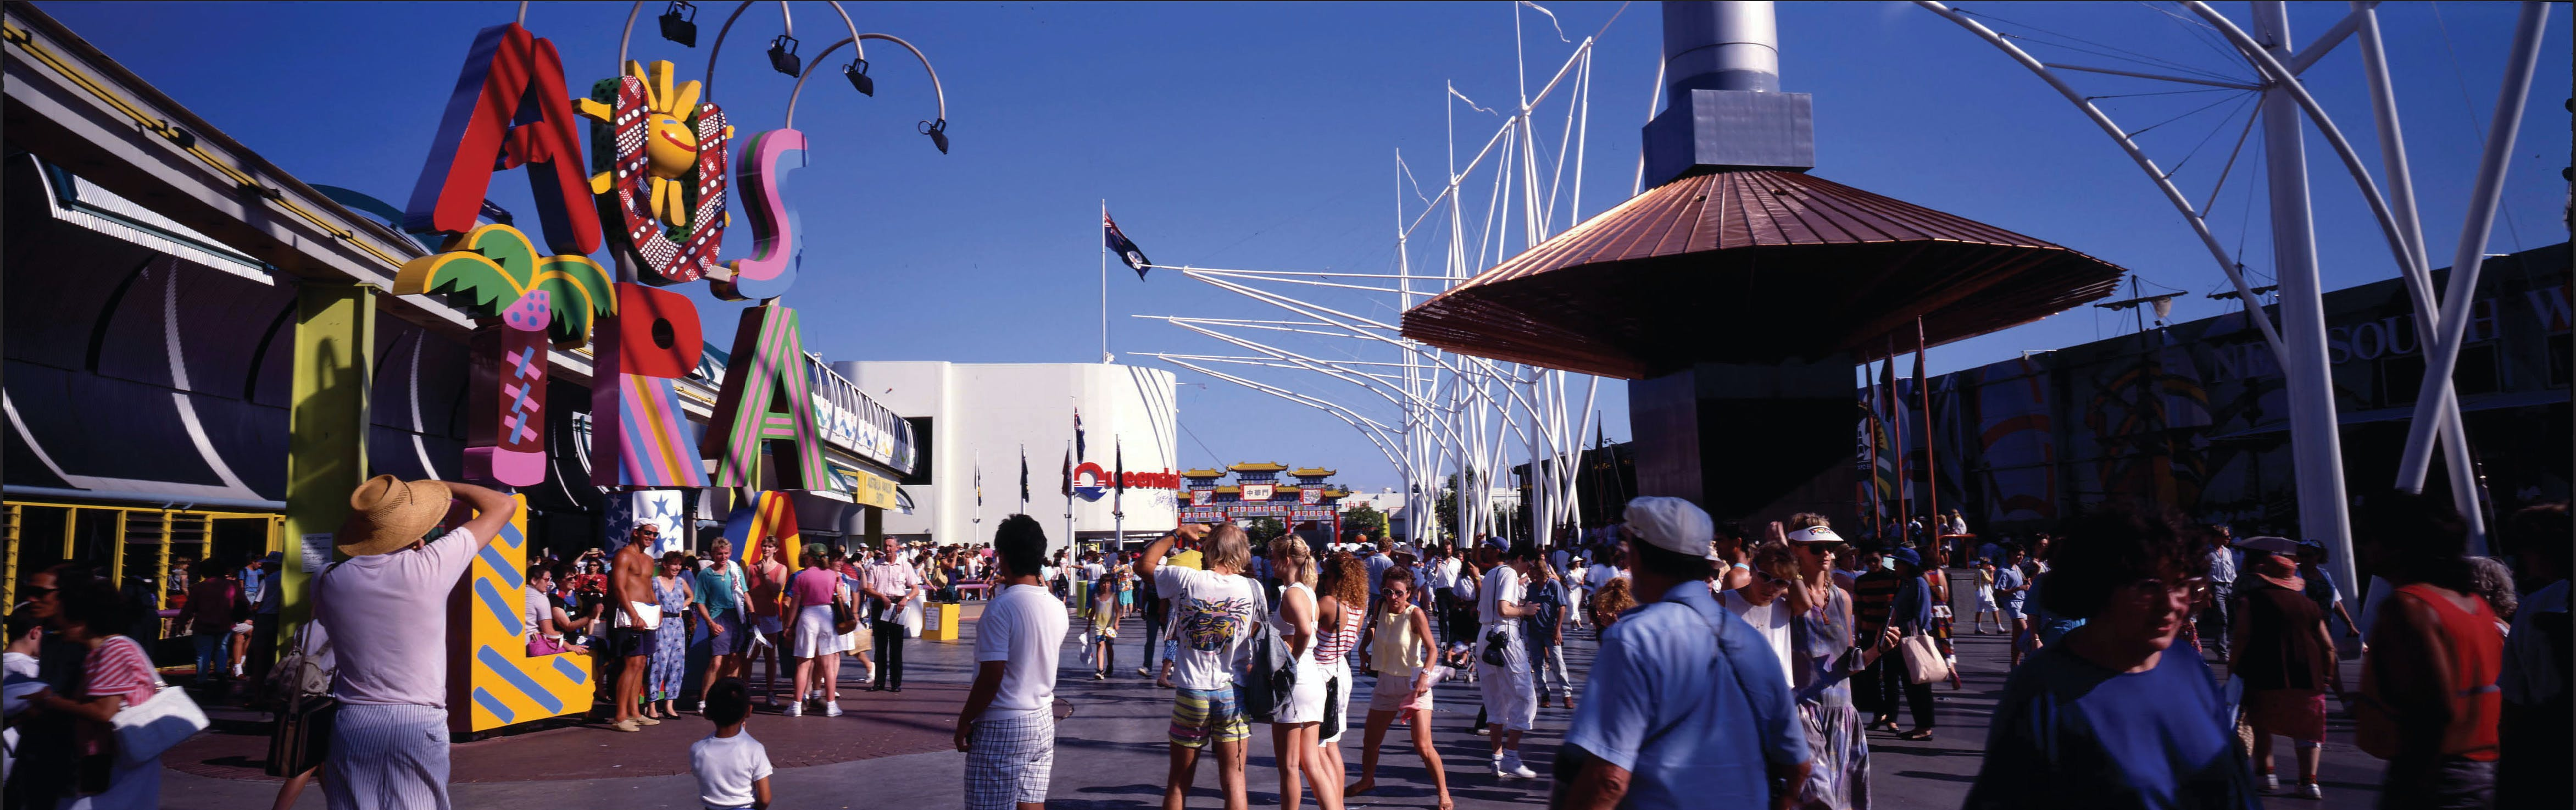 World Expo 88 - Panoramic on site